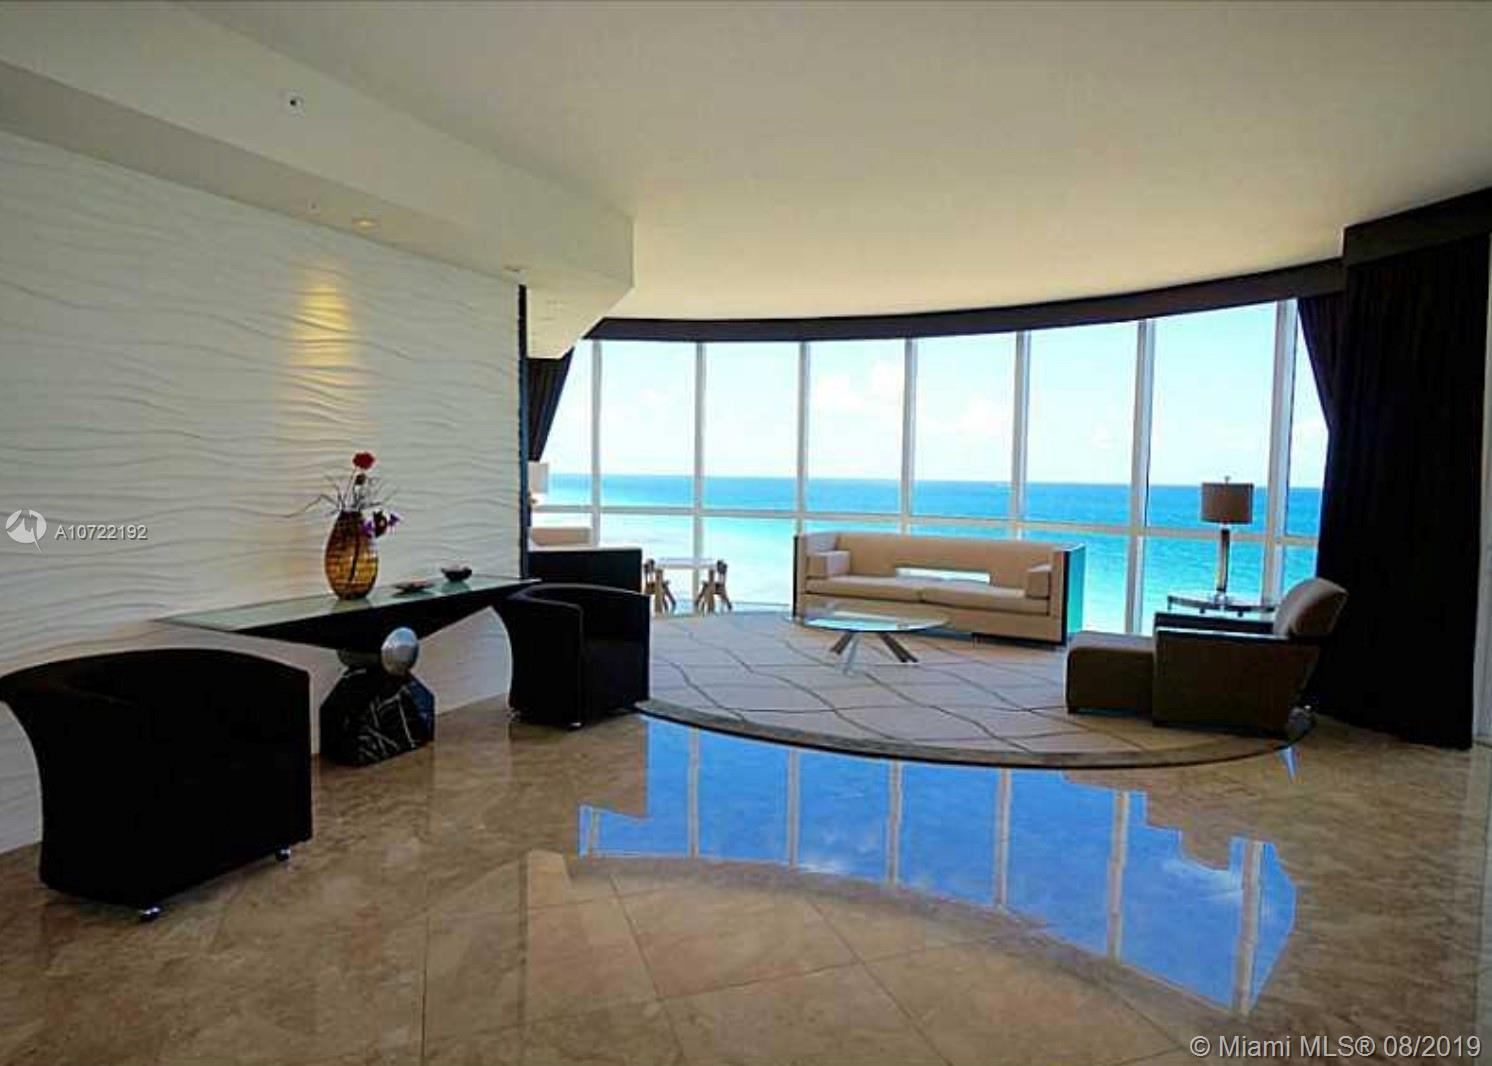 Trump Palace #1509 - 18101 Collins Ave #1509, Sunny Isles Beach, FL 33160